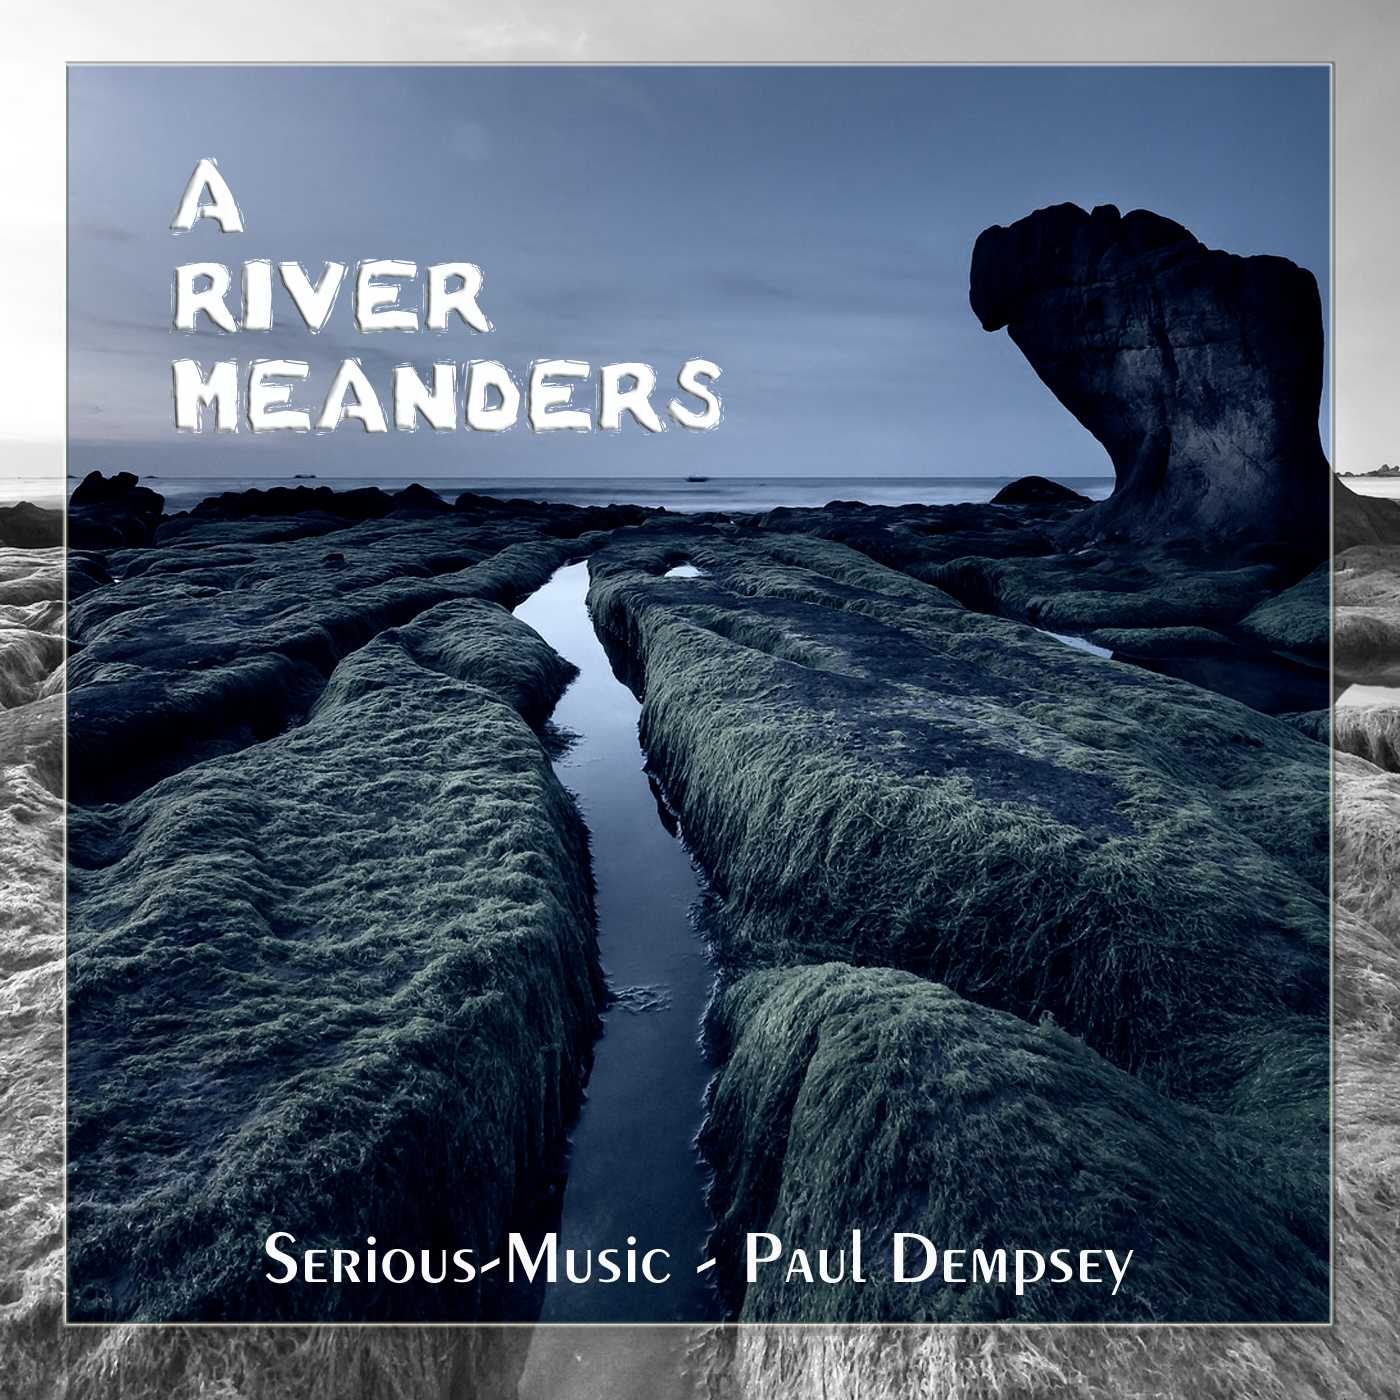 A River Meanders feat. Paul Dempsey - Album TRUTH